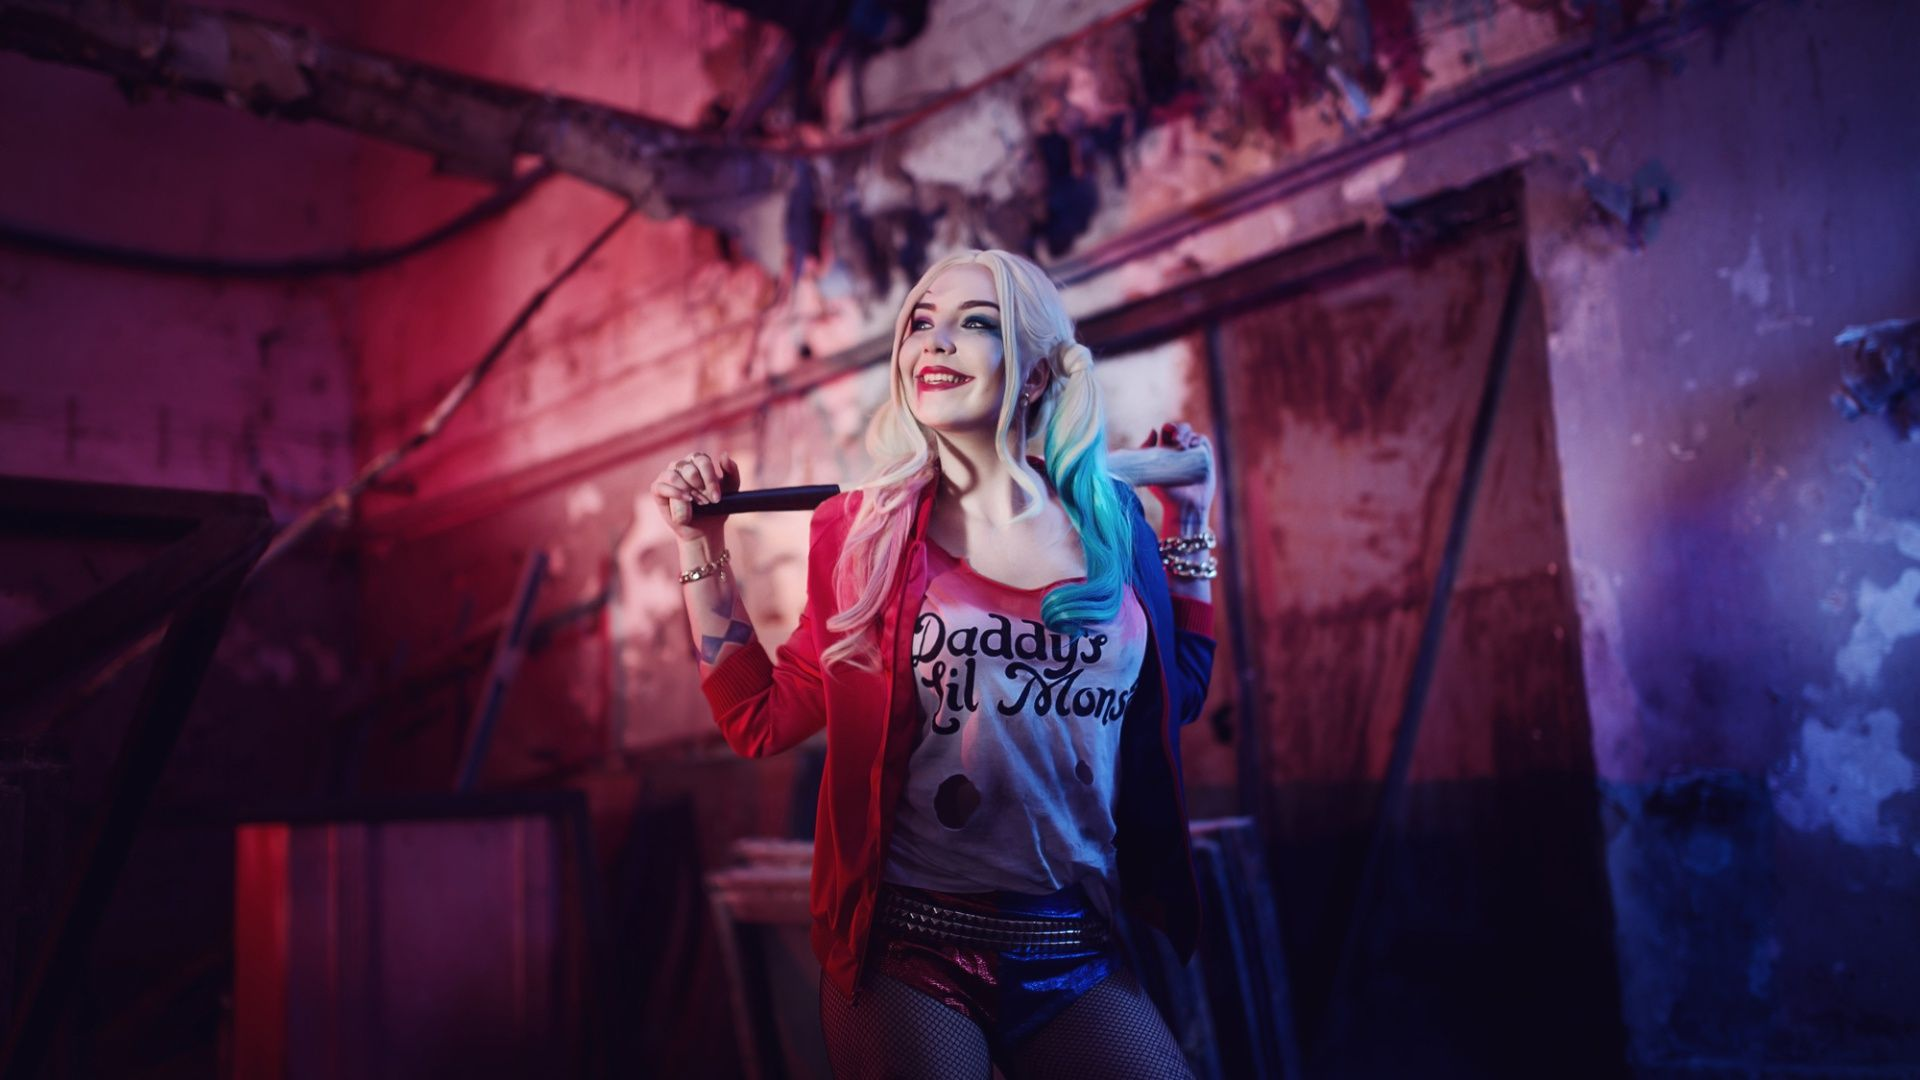 1920x1080 Suicide Squad Wallpapers HD Backgrounds, Images, Pics, Photos Free ...